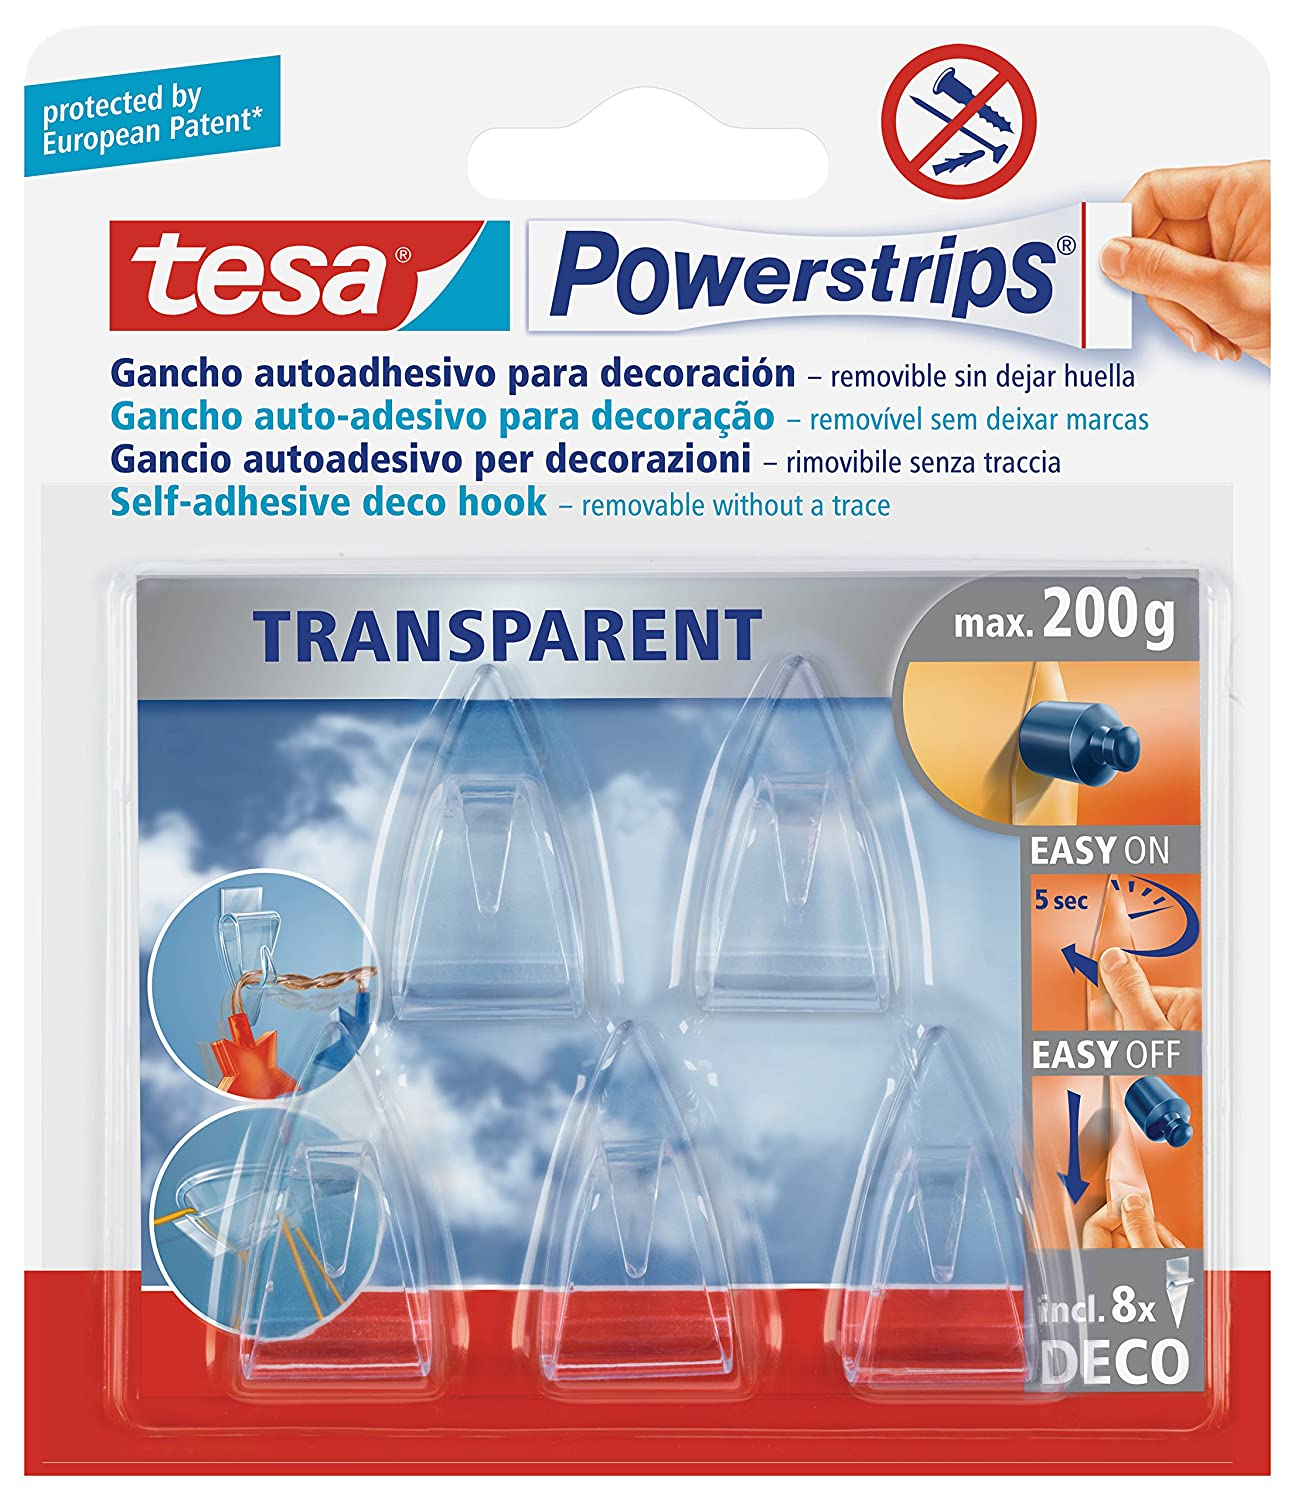 tesa UK Powerstrips Deco Clear Hooks with Removable Adhesive Strips, 5 Hooks 58900-00013-03